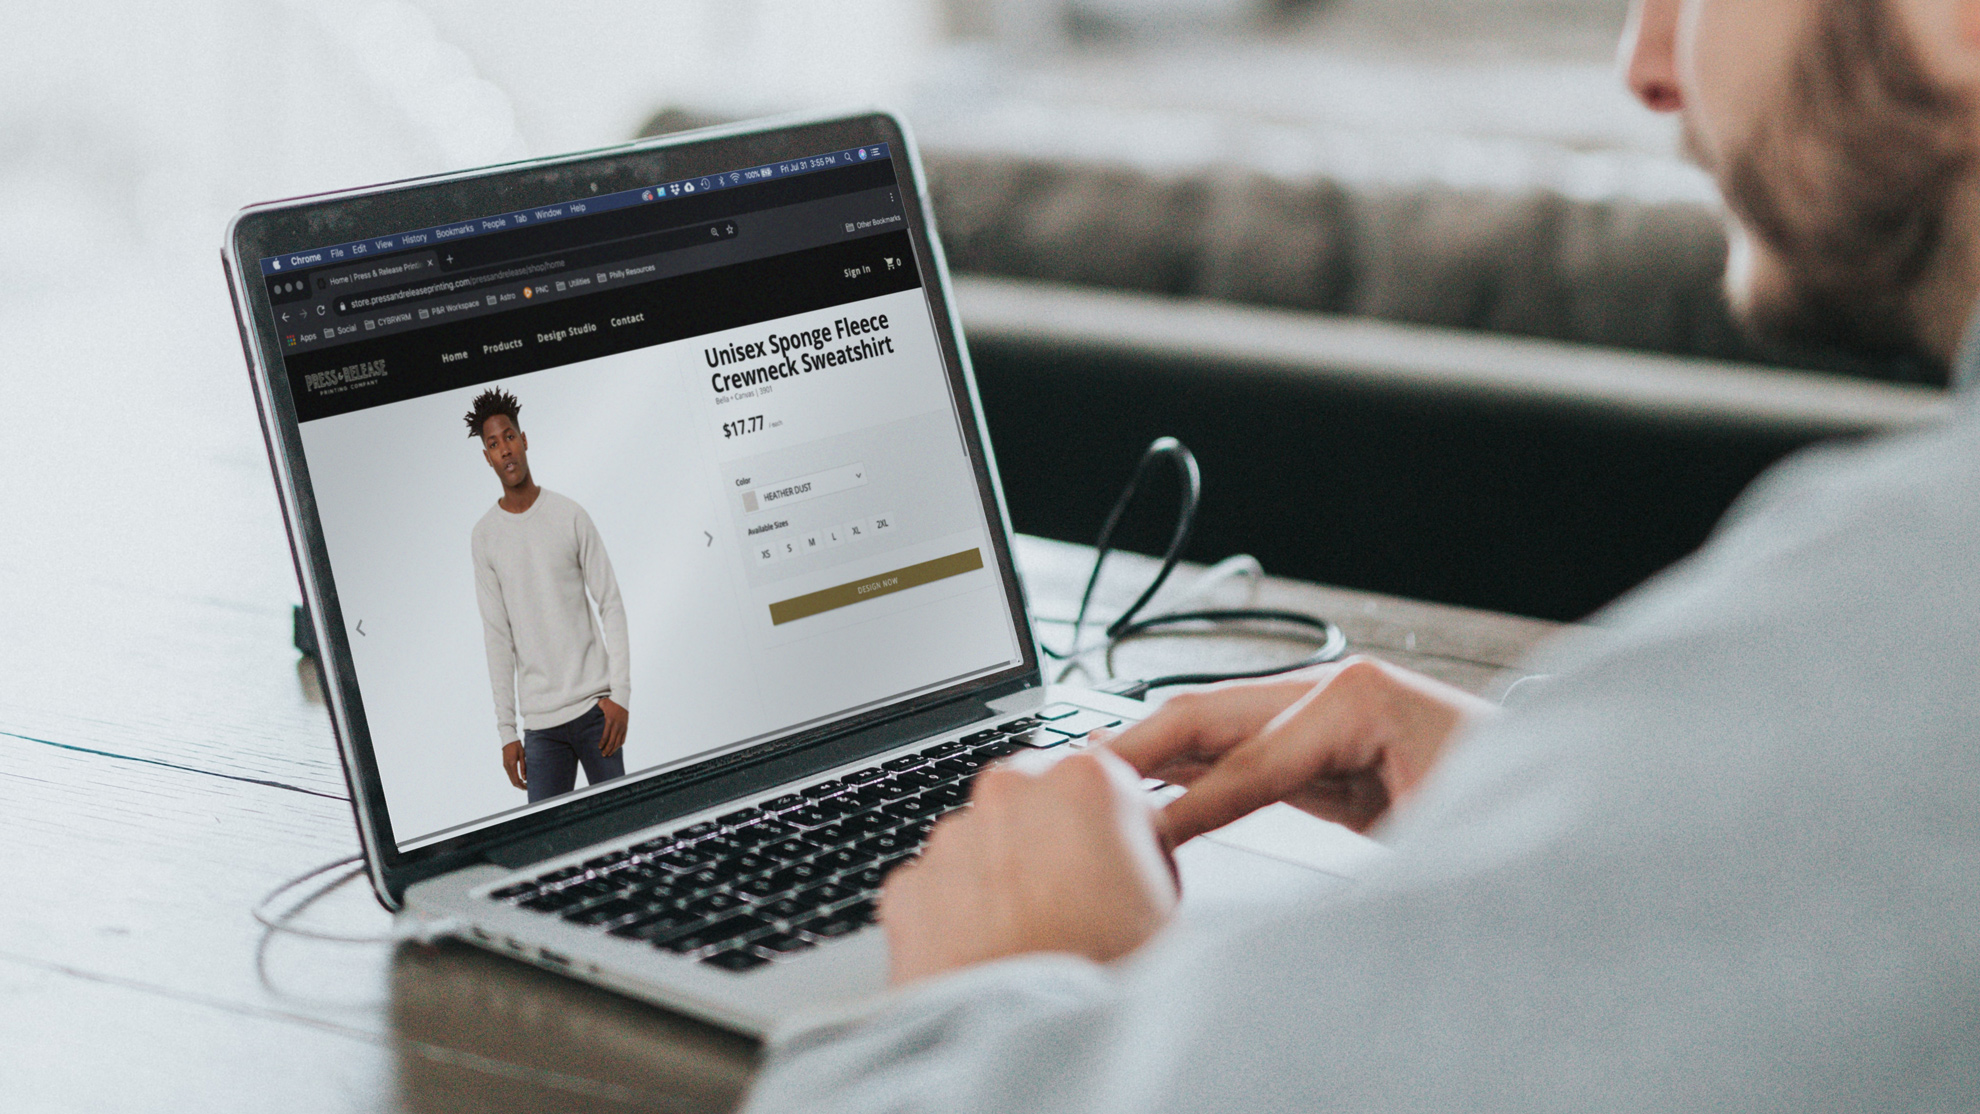 5 Benefits to Ordering Custom T-Shirts Online